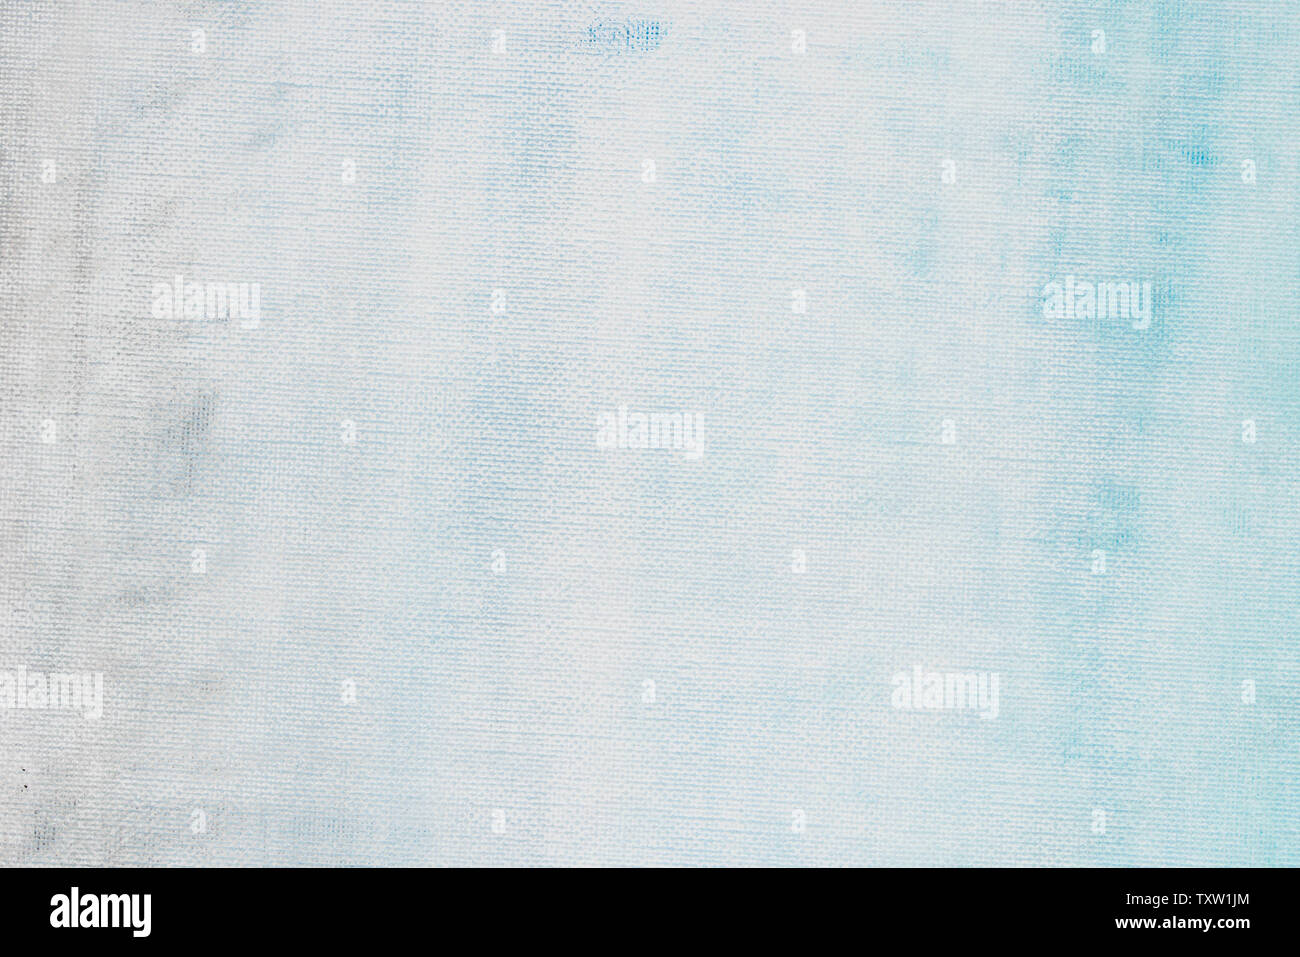 blue and white painted on artistic canvas background texture closeup - Stock Image